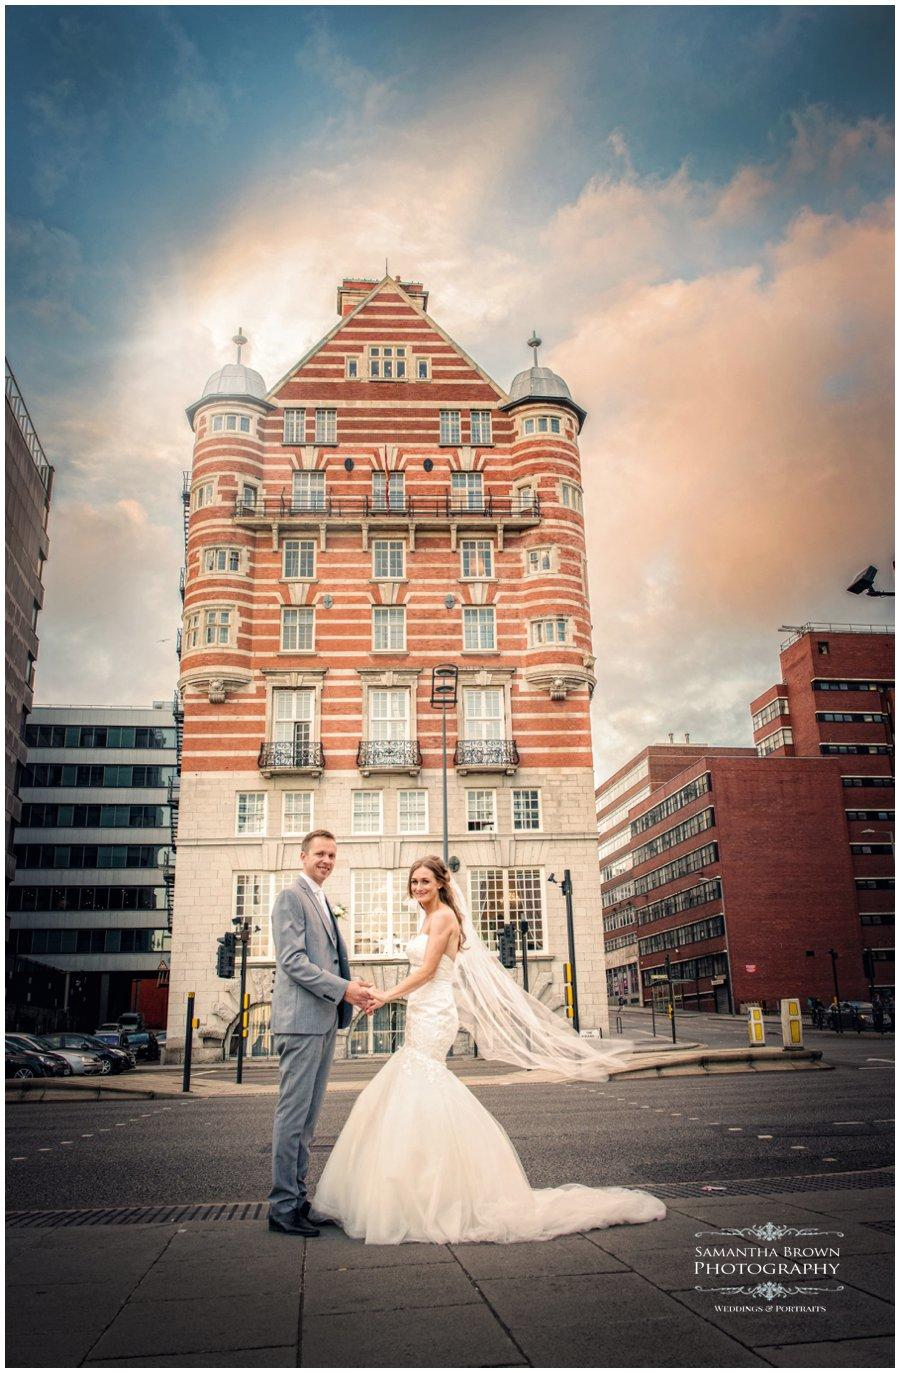 wedding-photography-liverpool-by-samantha-brown_0183